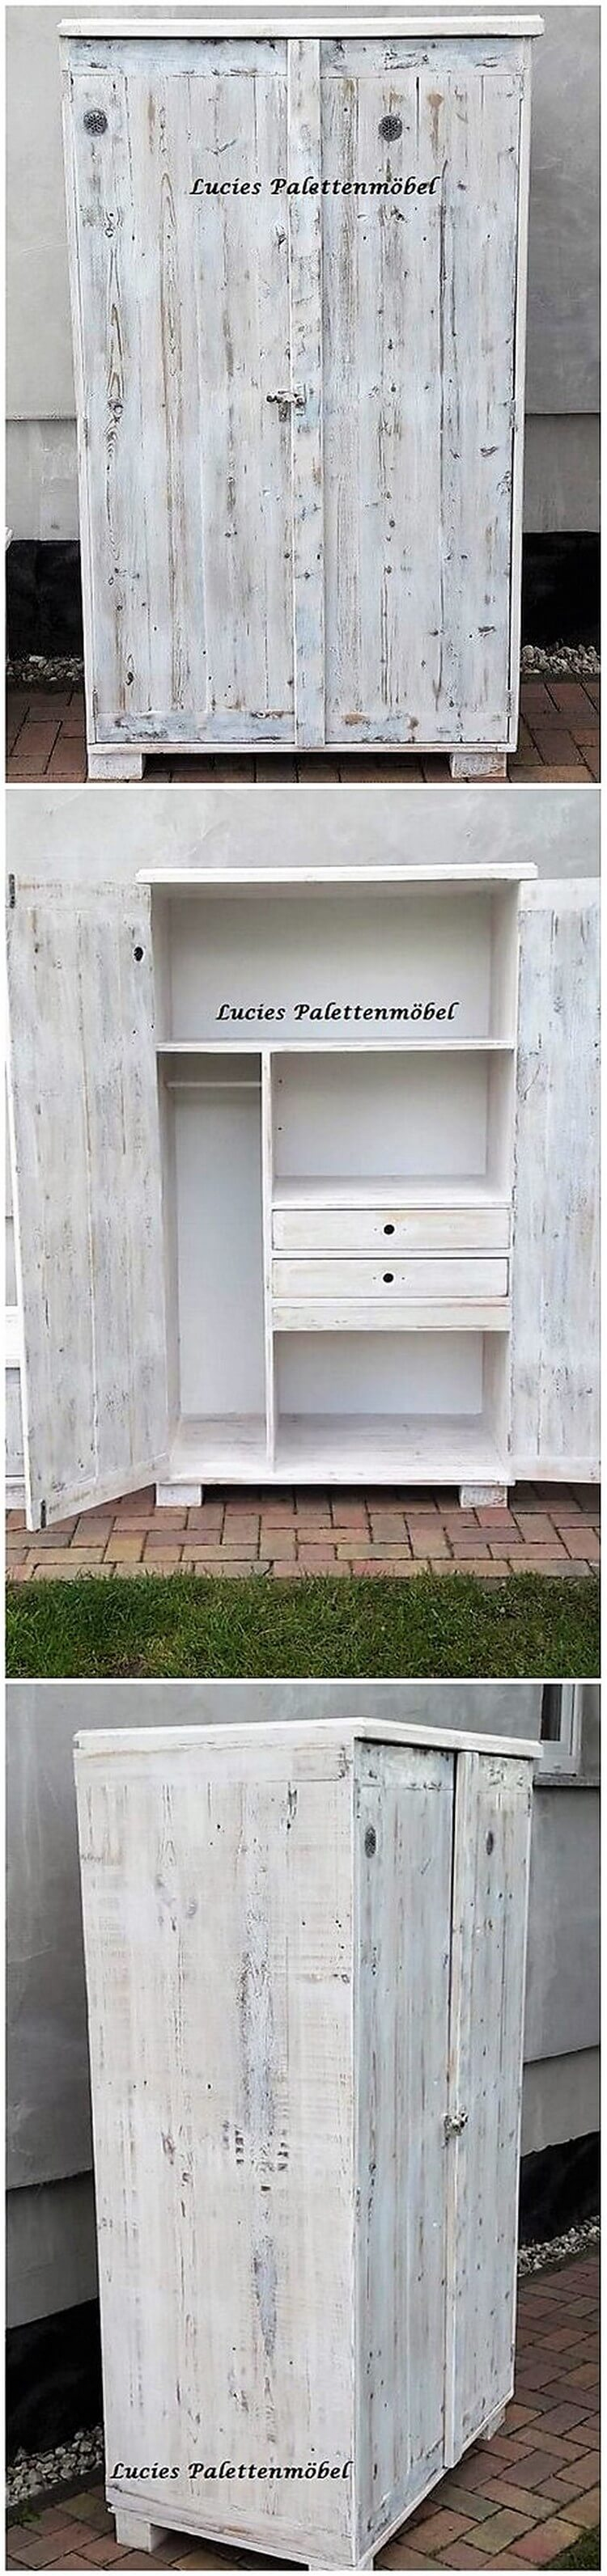 Wood Pallet Cupboard (2)